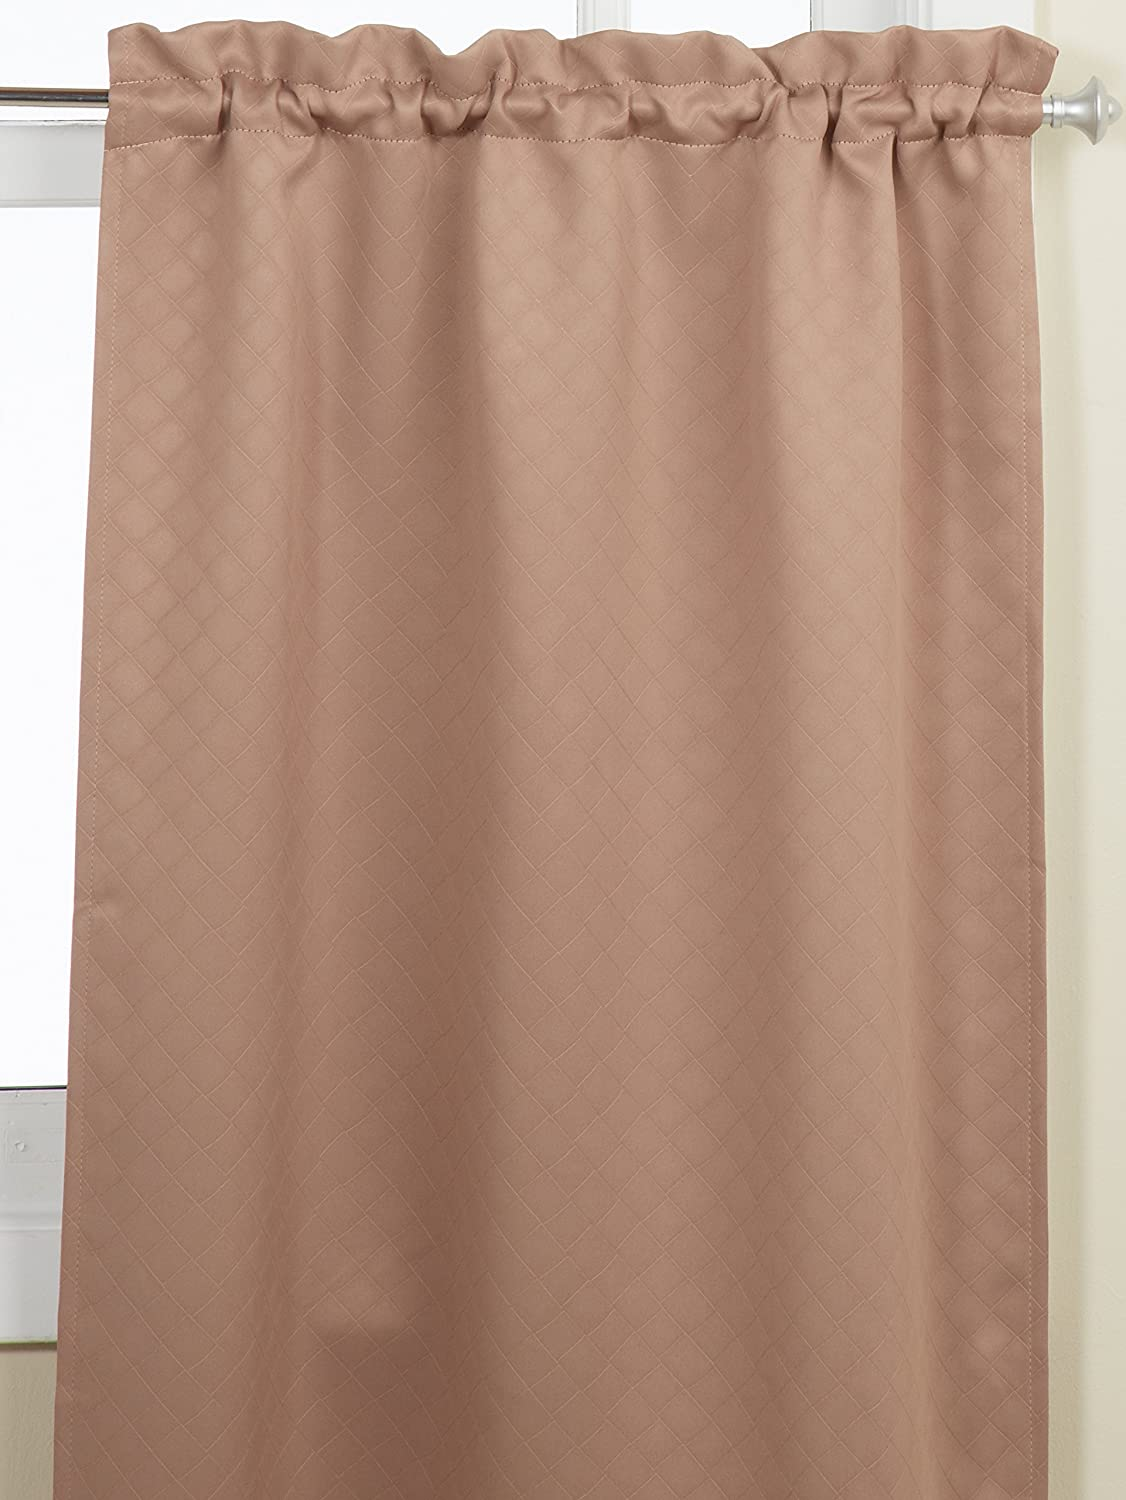 Chocolate Lorraine Home Fashions Facets Room Darkening Blackout Tier Curtain Pair 55 by 36-Inch